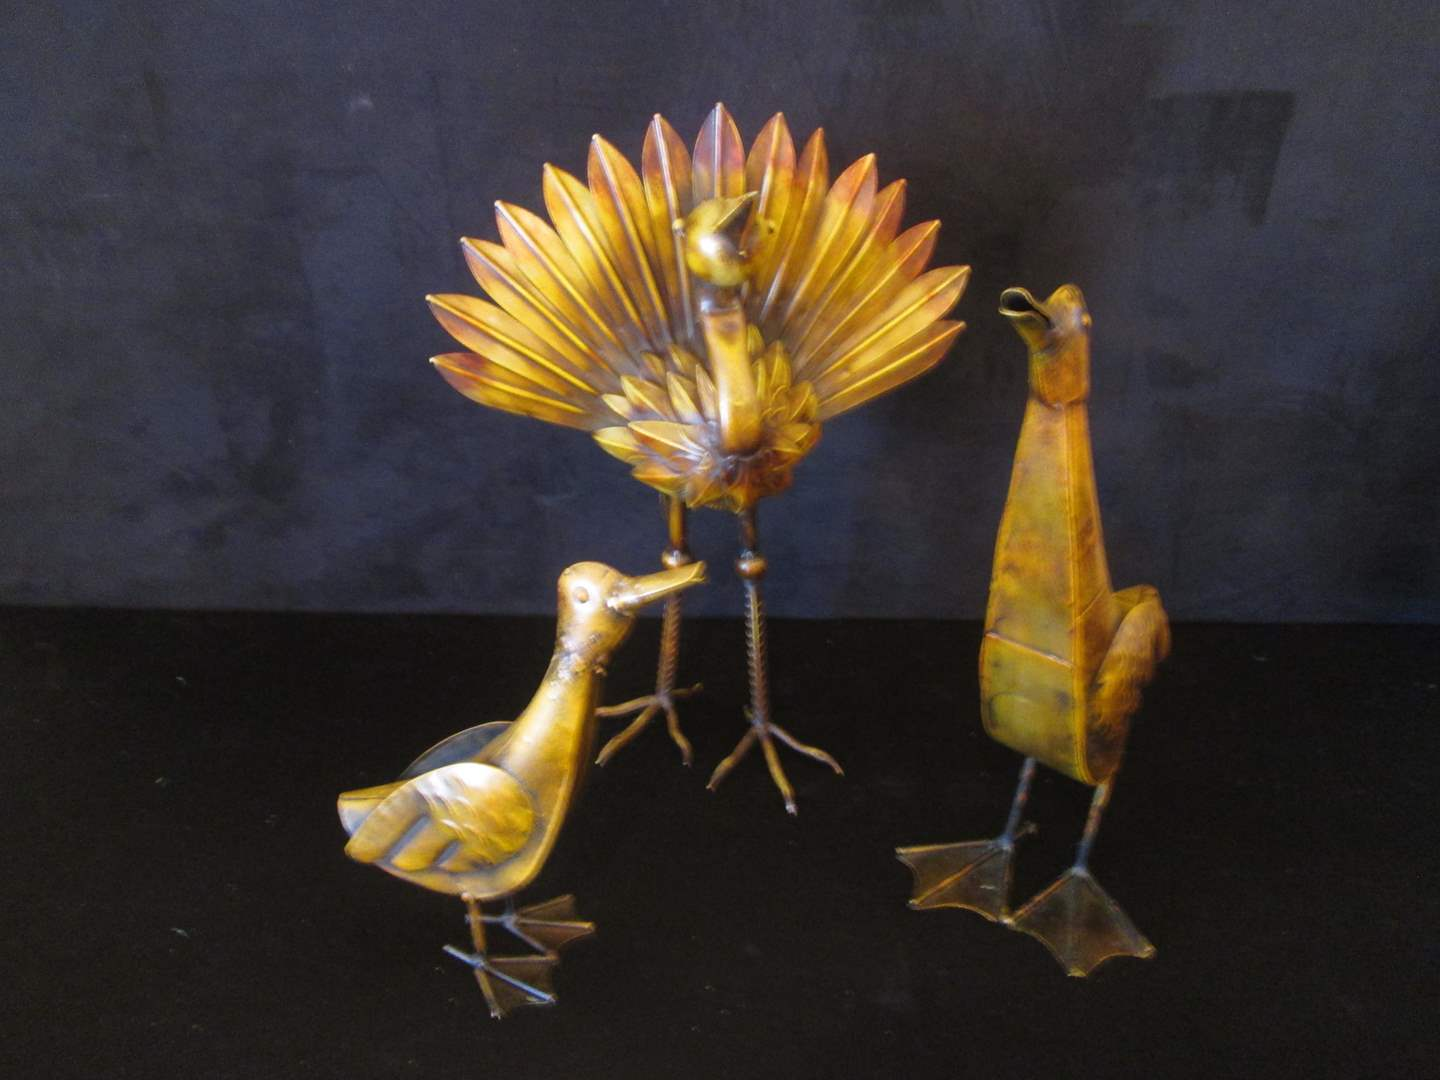 Lot # 235 - 3-Piece Metal Bird Sculpture Set (main image)